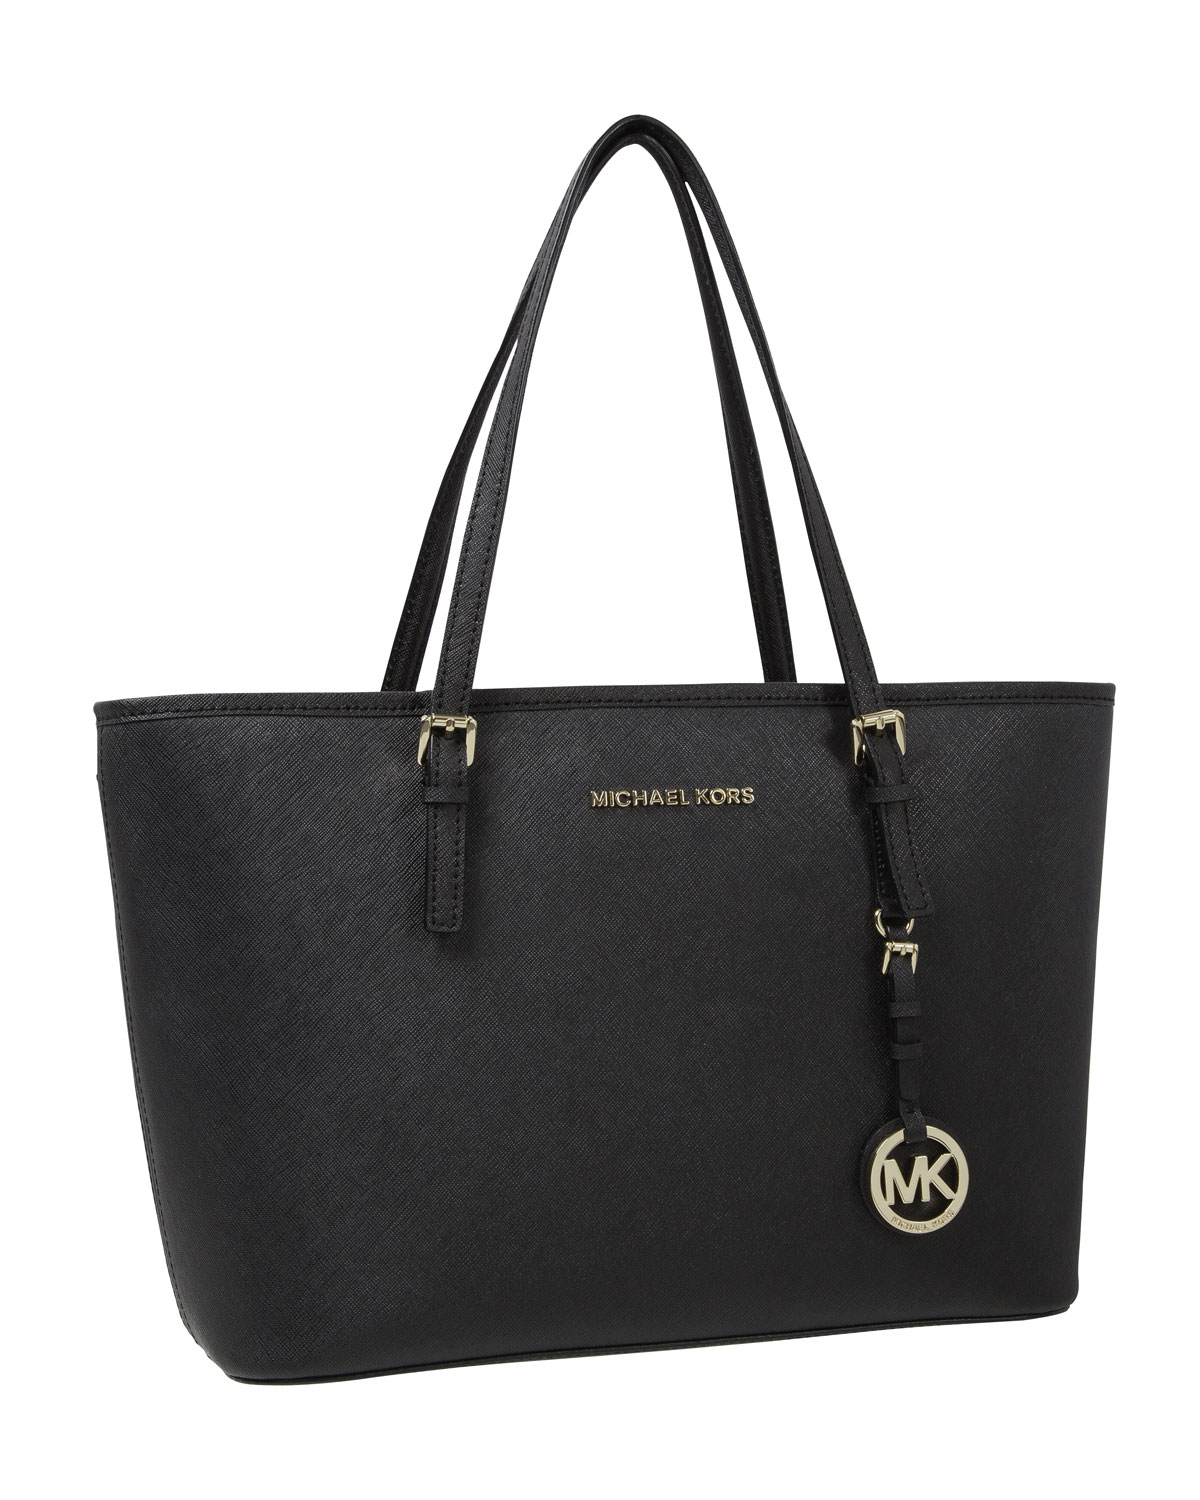 michael kors jet set saffiano ipad travel tote in black lyst. Black Bedroom Furniture Sets. Home Design Ideas